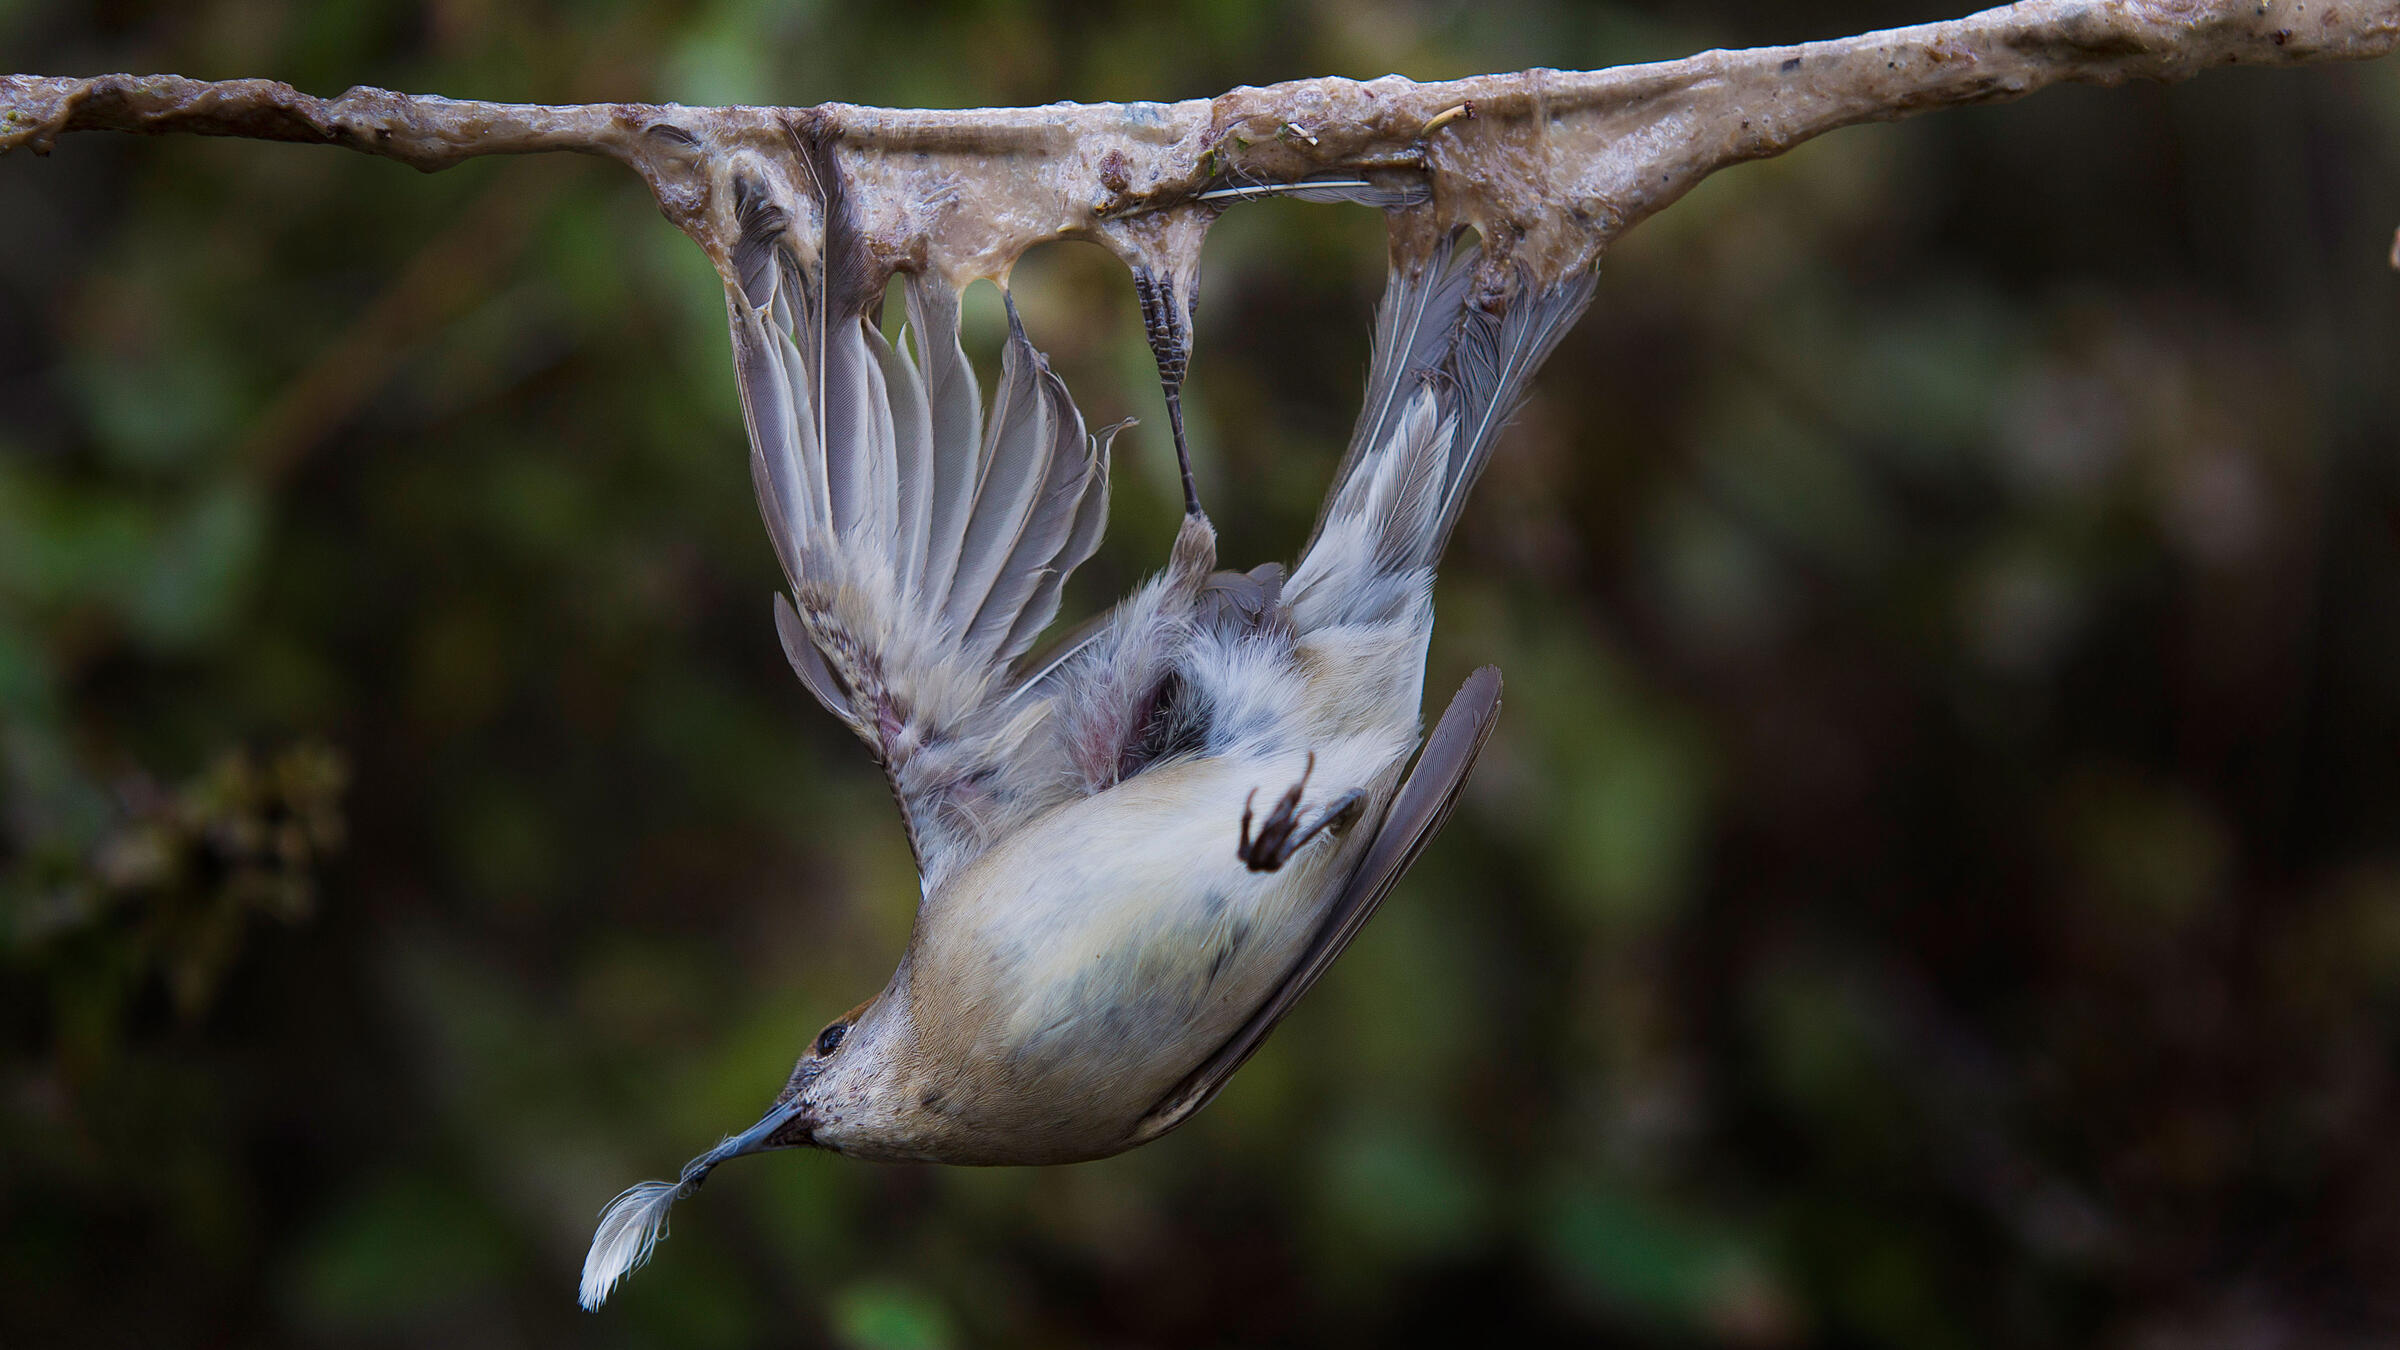 A female Blackcap hangs from a gluey, sap-covered branch made by songbird poachers in Ayia Napa, Cyprus. The bird was released by activists from the Committee Against Bird Slaughter. David Guttenfelder/National Geographic/AP